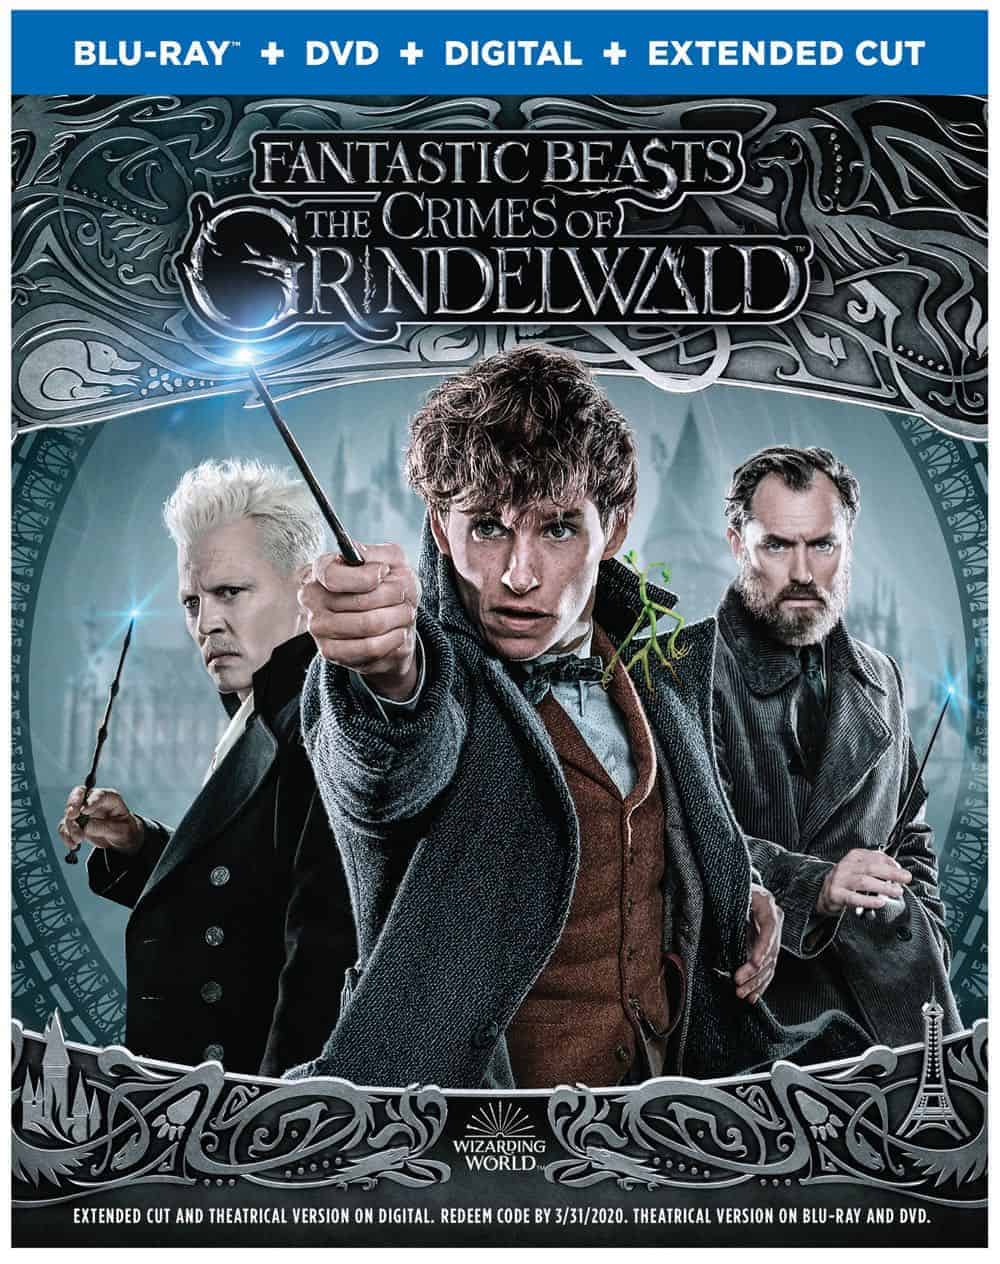 Fantastic Beasts The Crimes of Grindelwald 4K, Blu-ray, Digital And